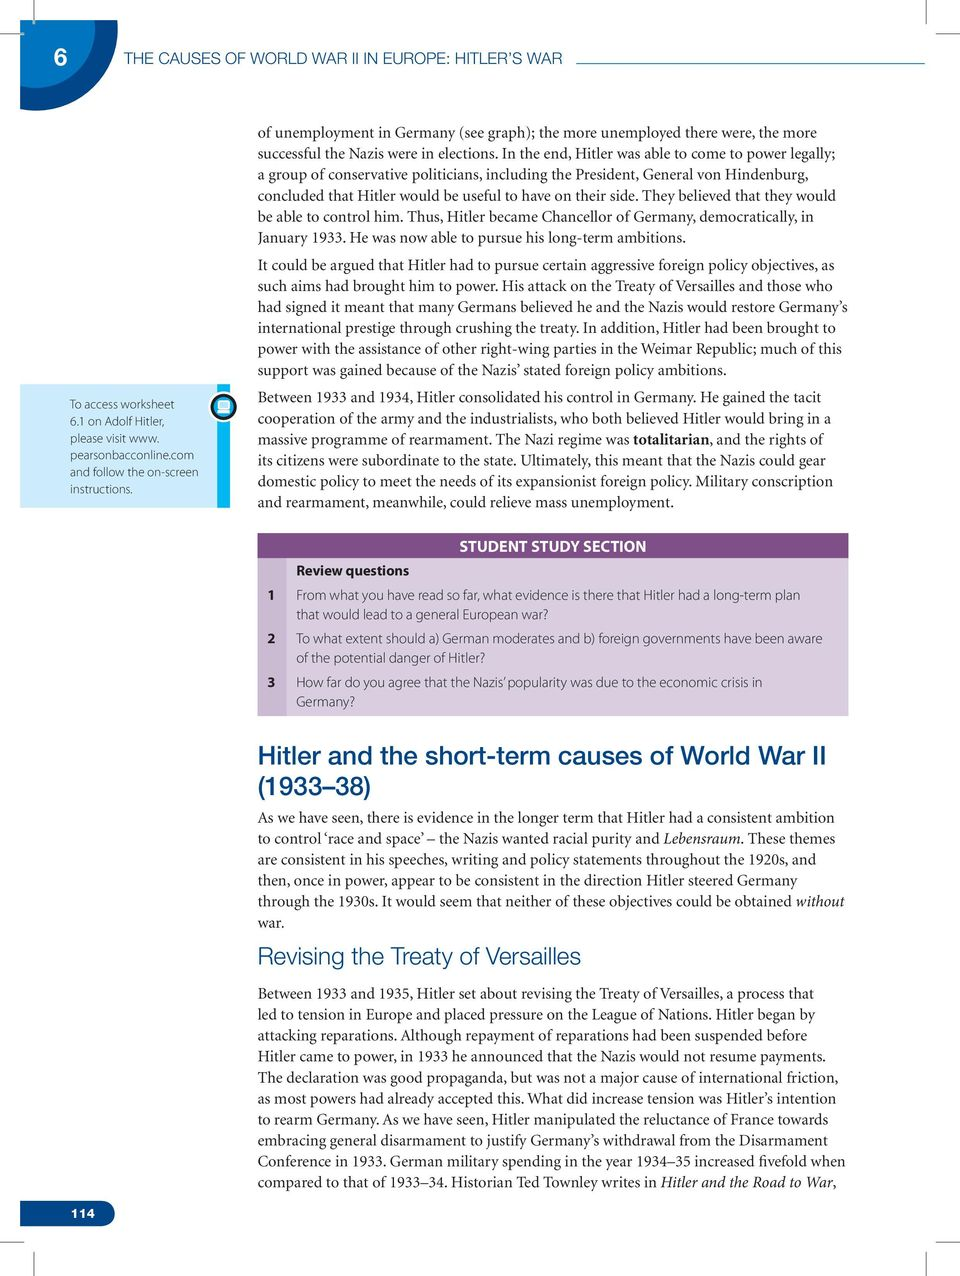 The Causes of World War II - PDF